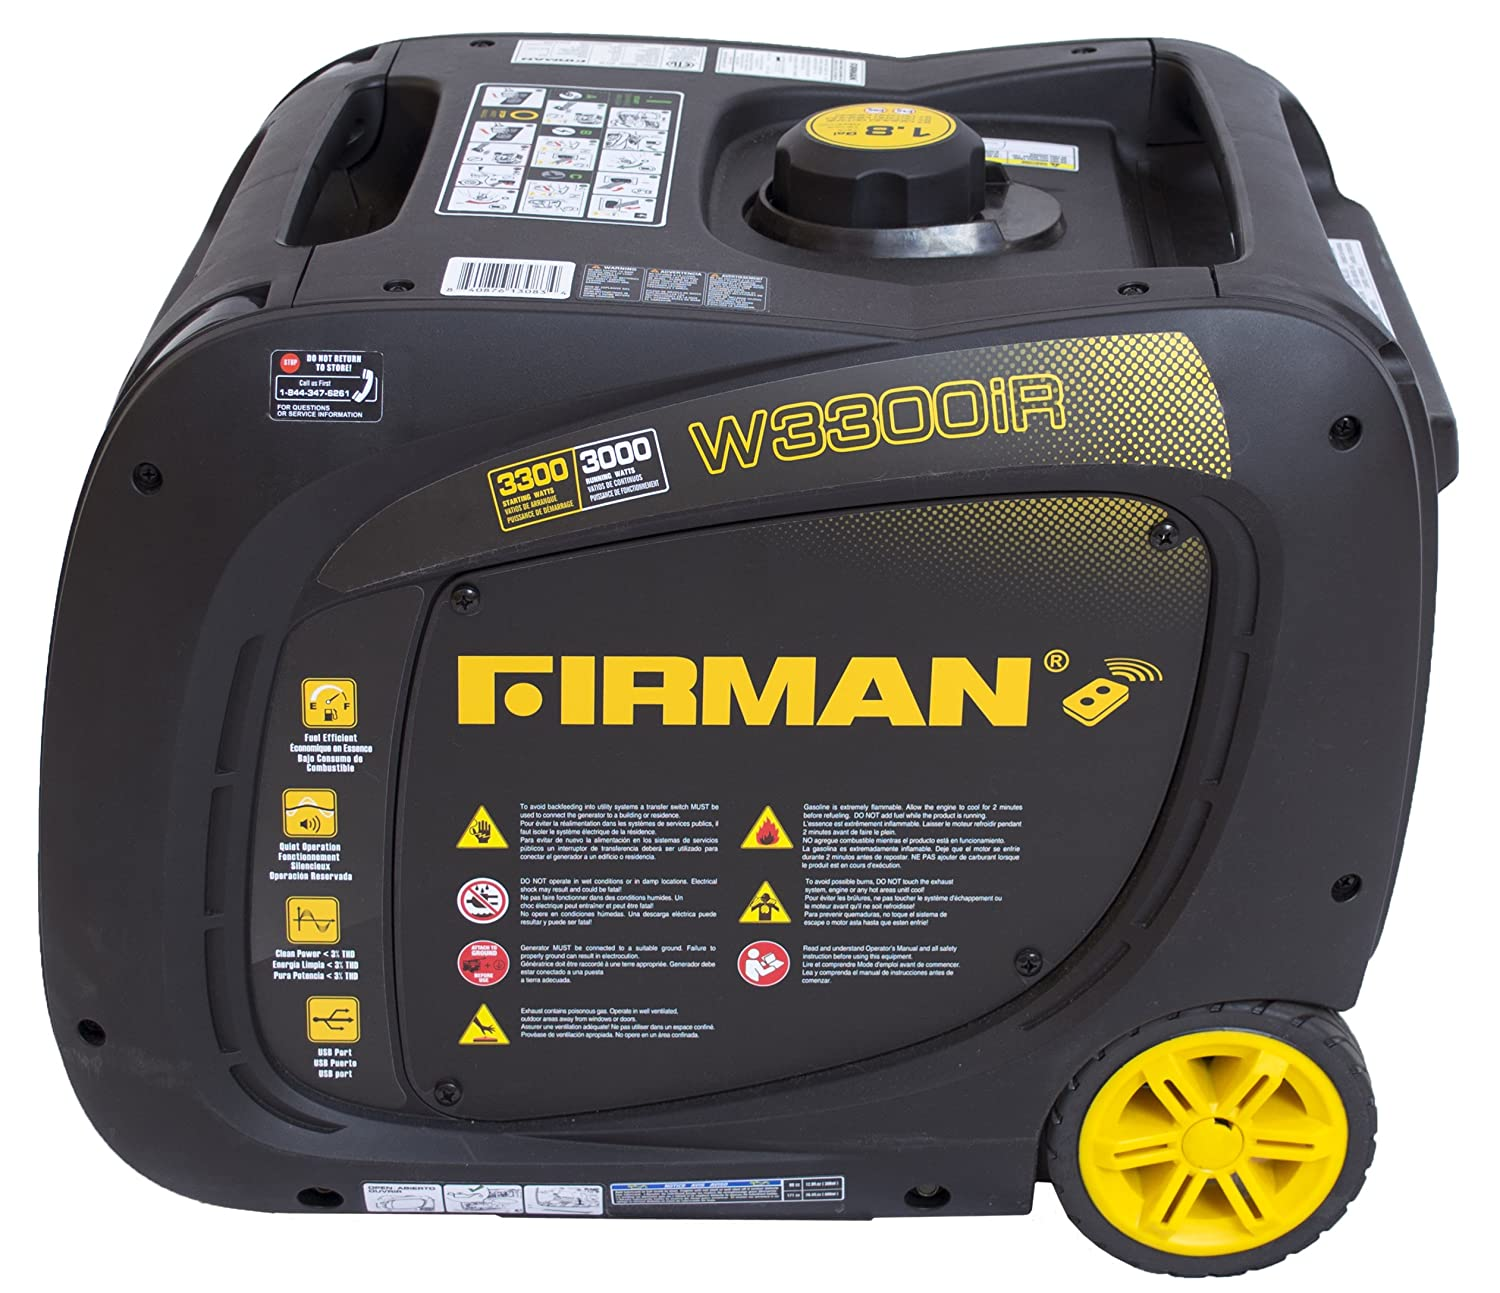 Amazon.com: Firman Power Equipment W03083 3300 Watt CARB Gasoline Inverter Generator with Electric and Remote Start: Garden & Outdoor